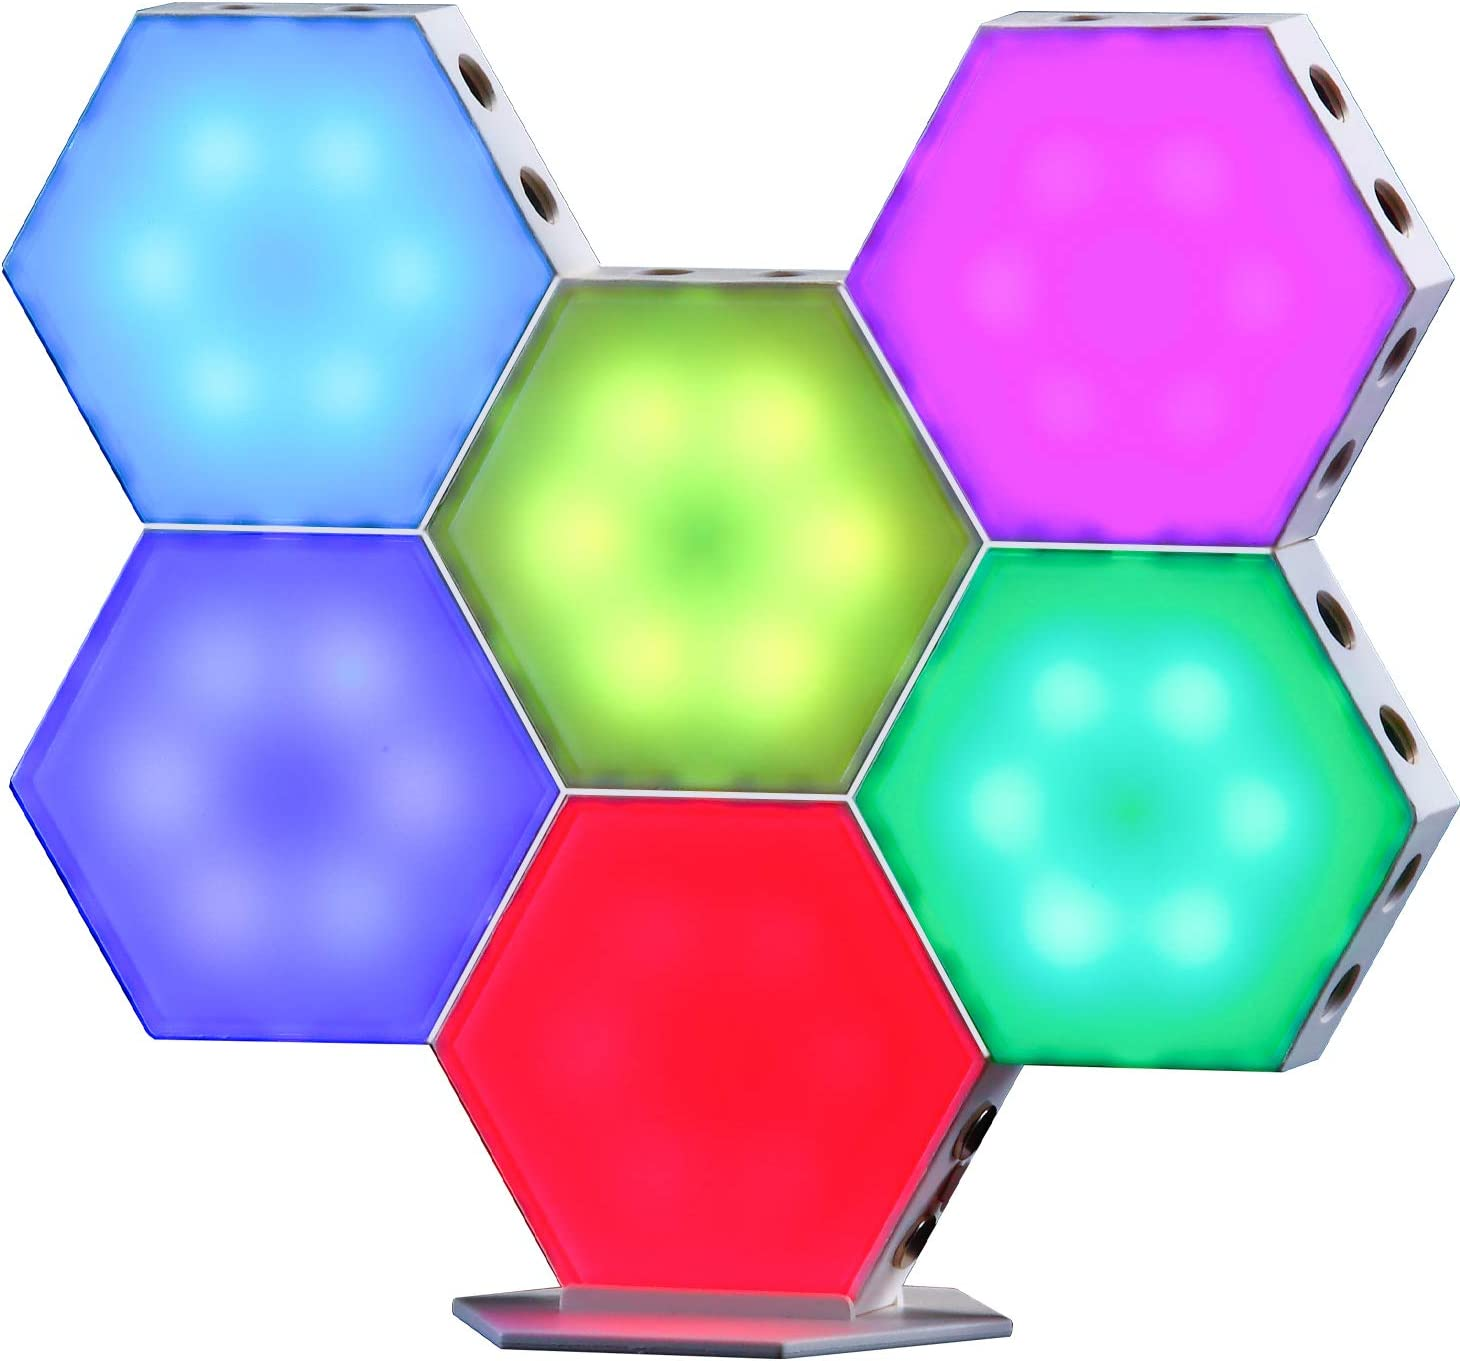 TACAHE Touch Sensitive Hexagon Wall Light - RGB Color Changing LED Light Panel - DIY Geometric Modular with USB Port, Suitable for Gaming Desk, Table Mood Lighting 3.62